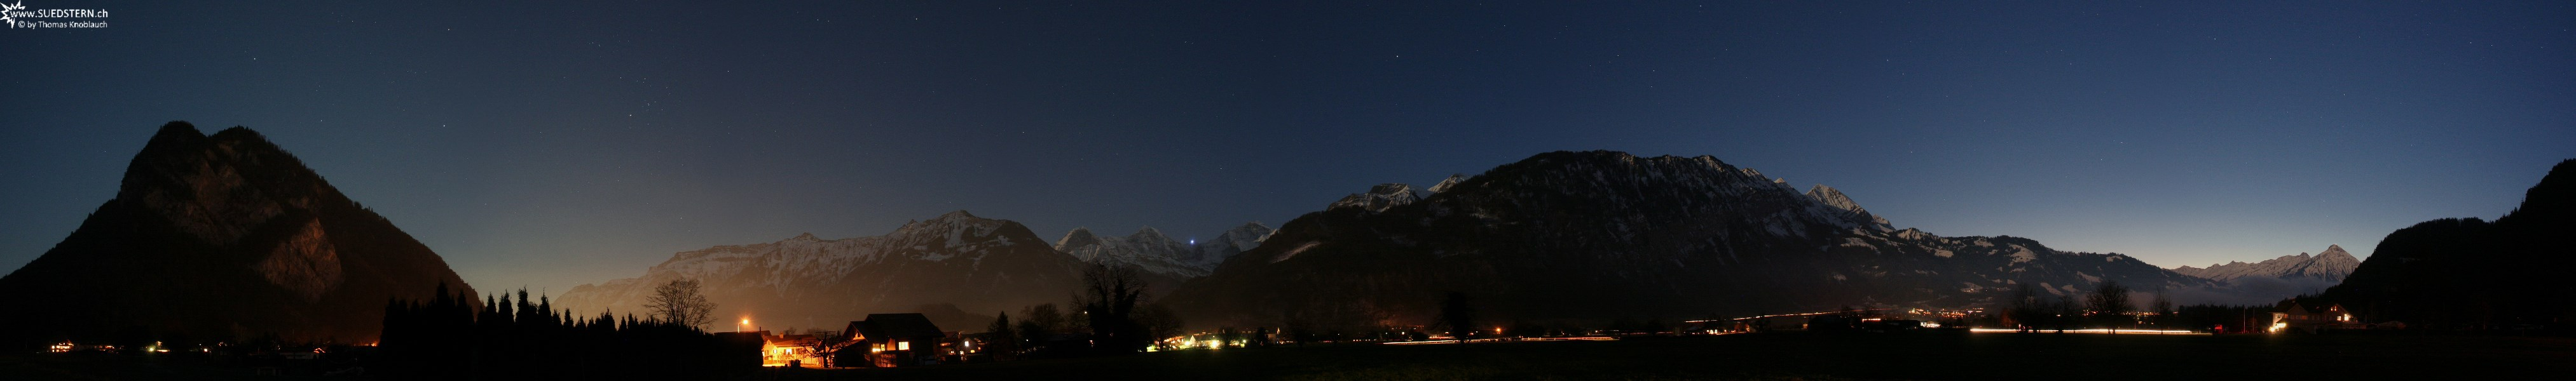 2007-12-24 - Panorama of Interlaken, Switzerland